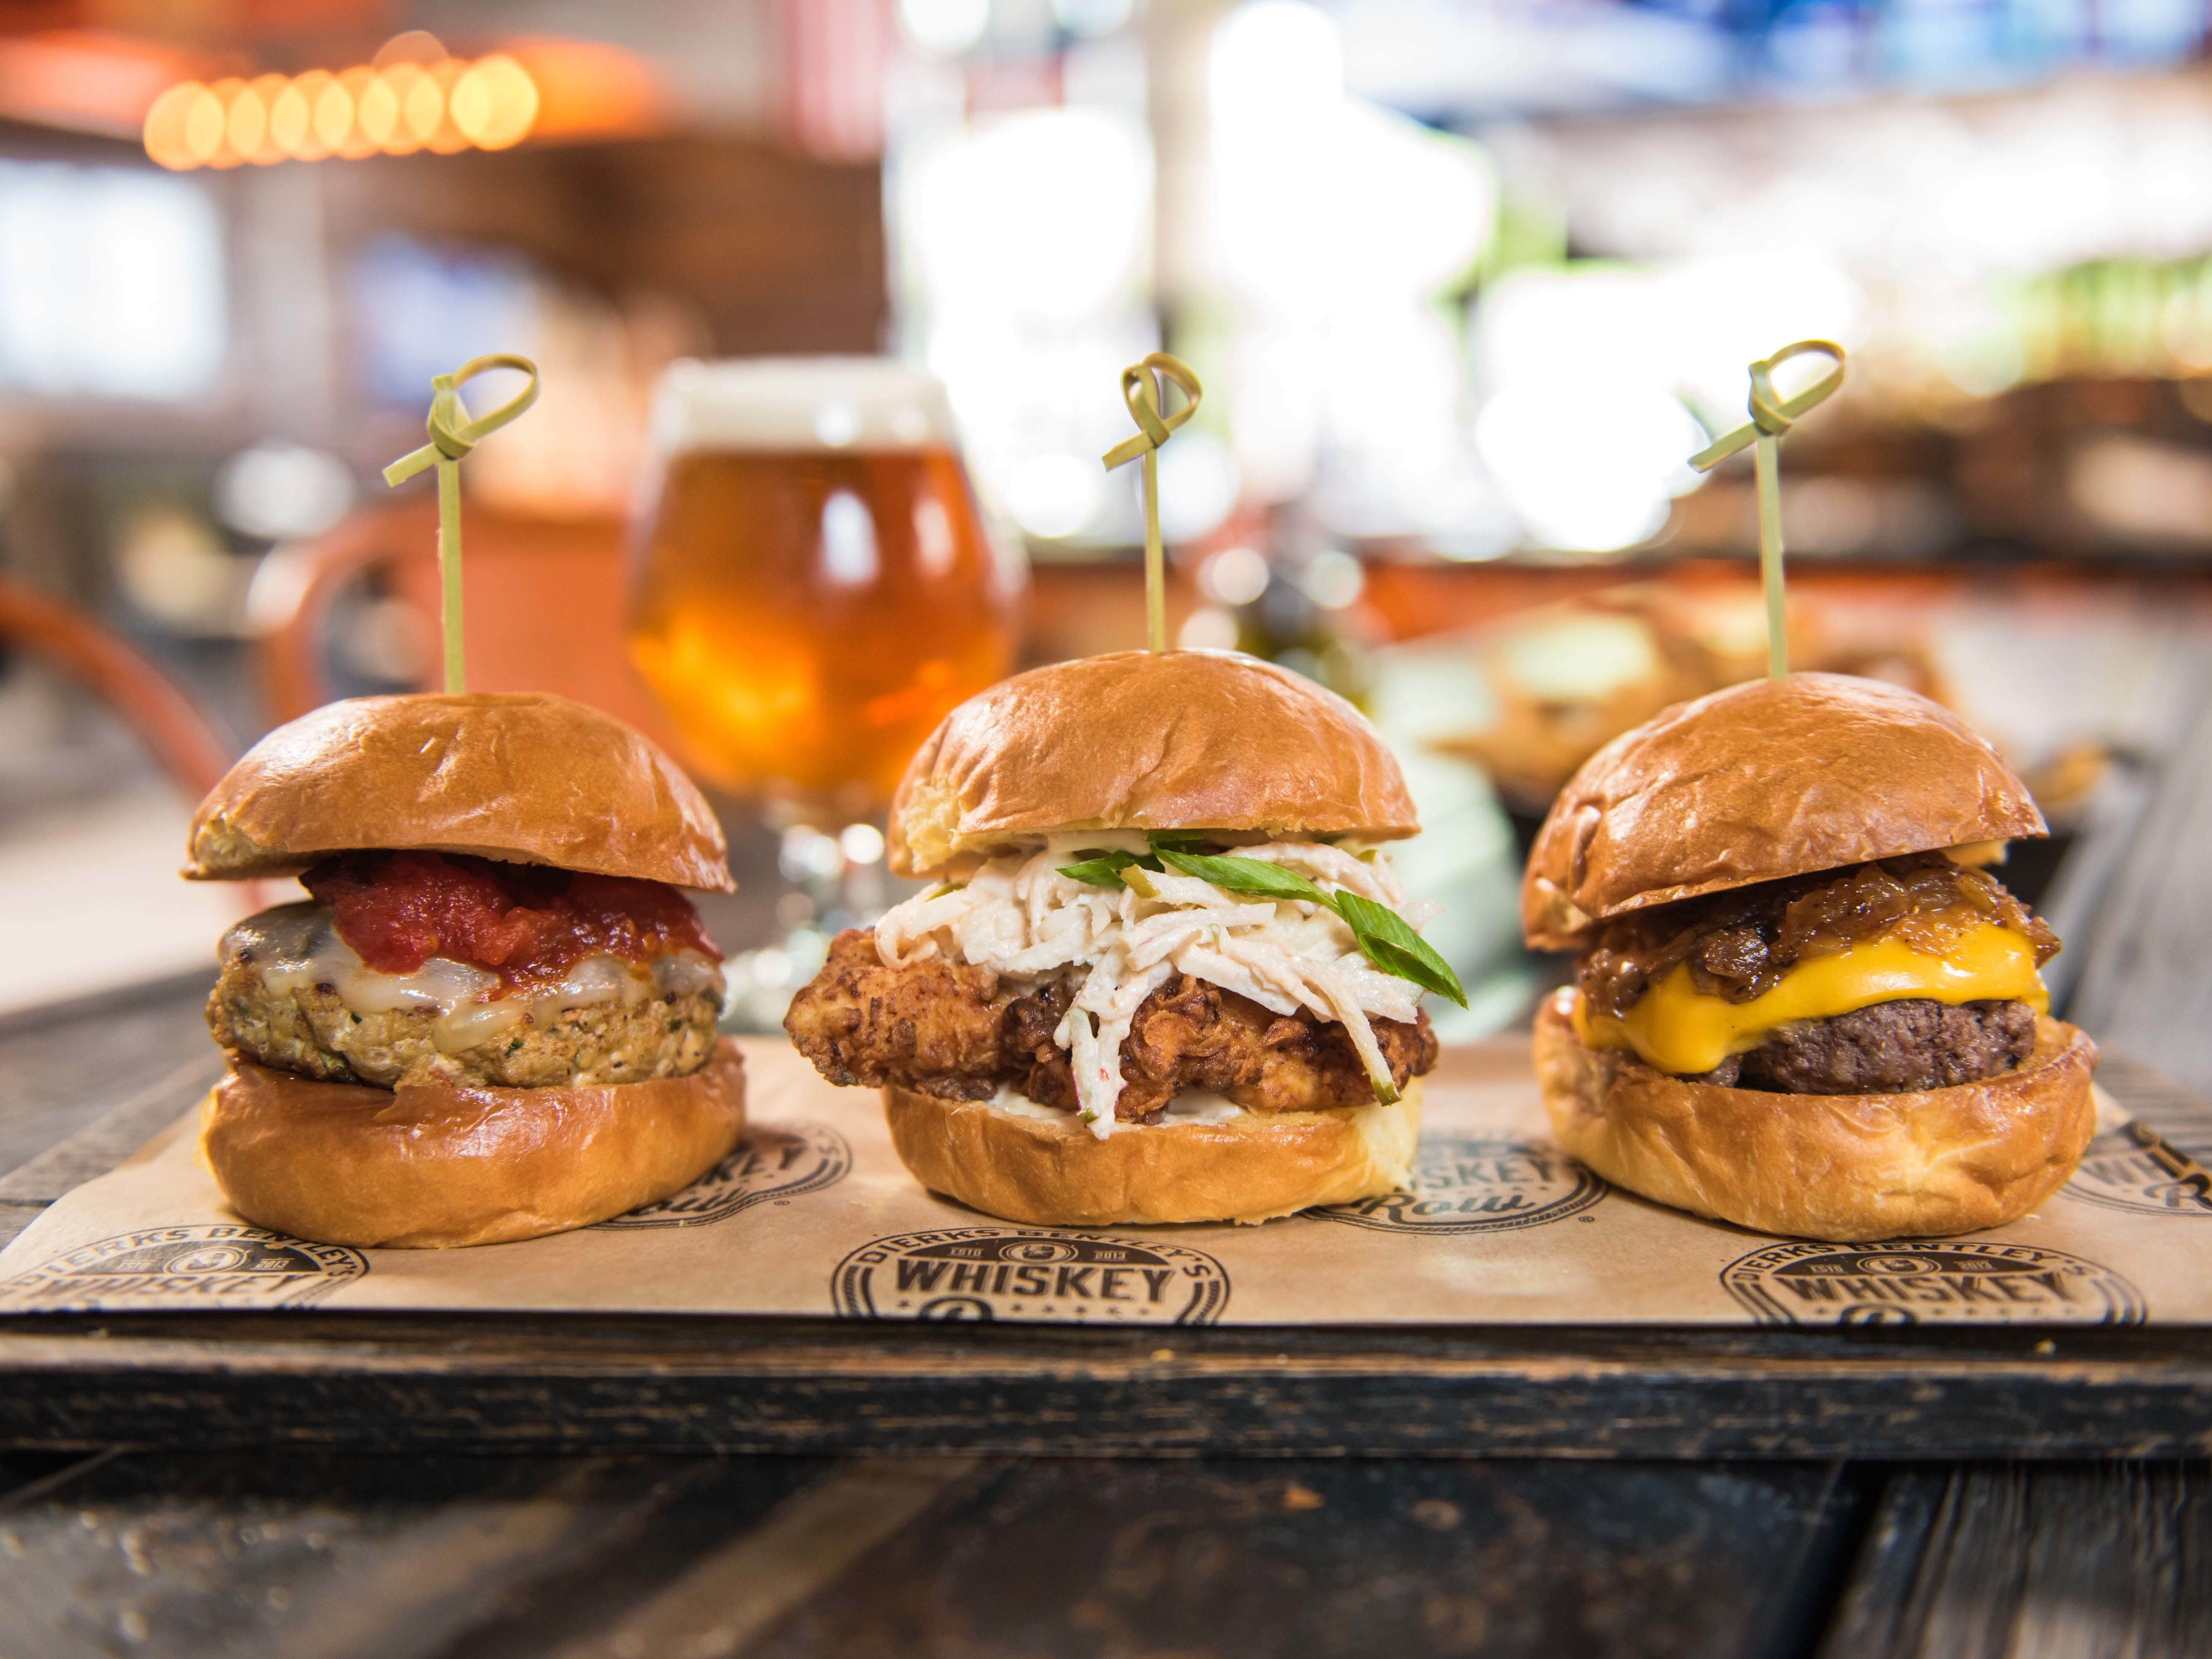 Riot Hospitality Group | Nov. 11, get50 percent offat Farm & Craft, Hand Cut Burgers & Chophouse, Dierks Bentley's Whiskey Row, El Hefe and Riot House. For details, visit each restaurant's website. | Details: riothg.com.